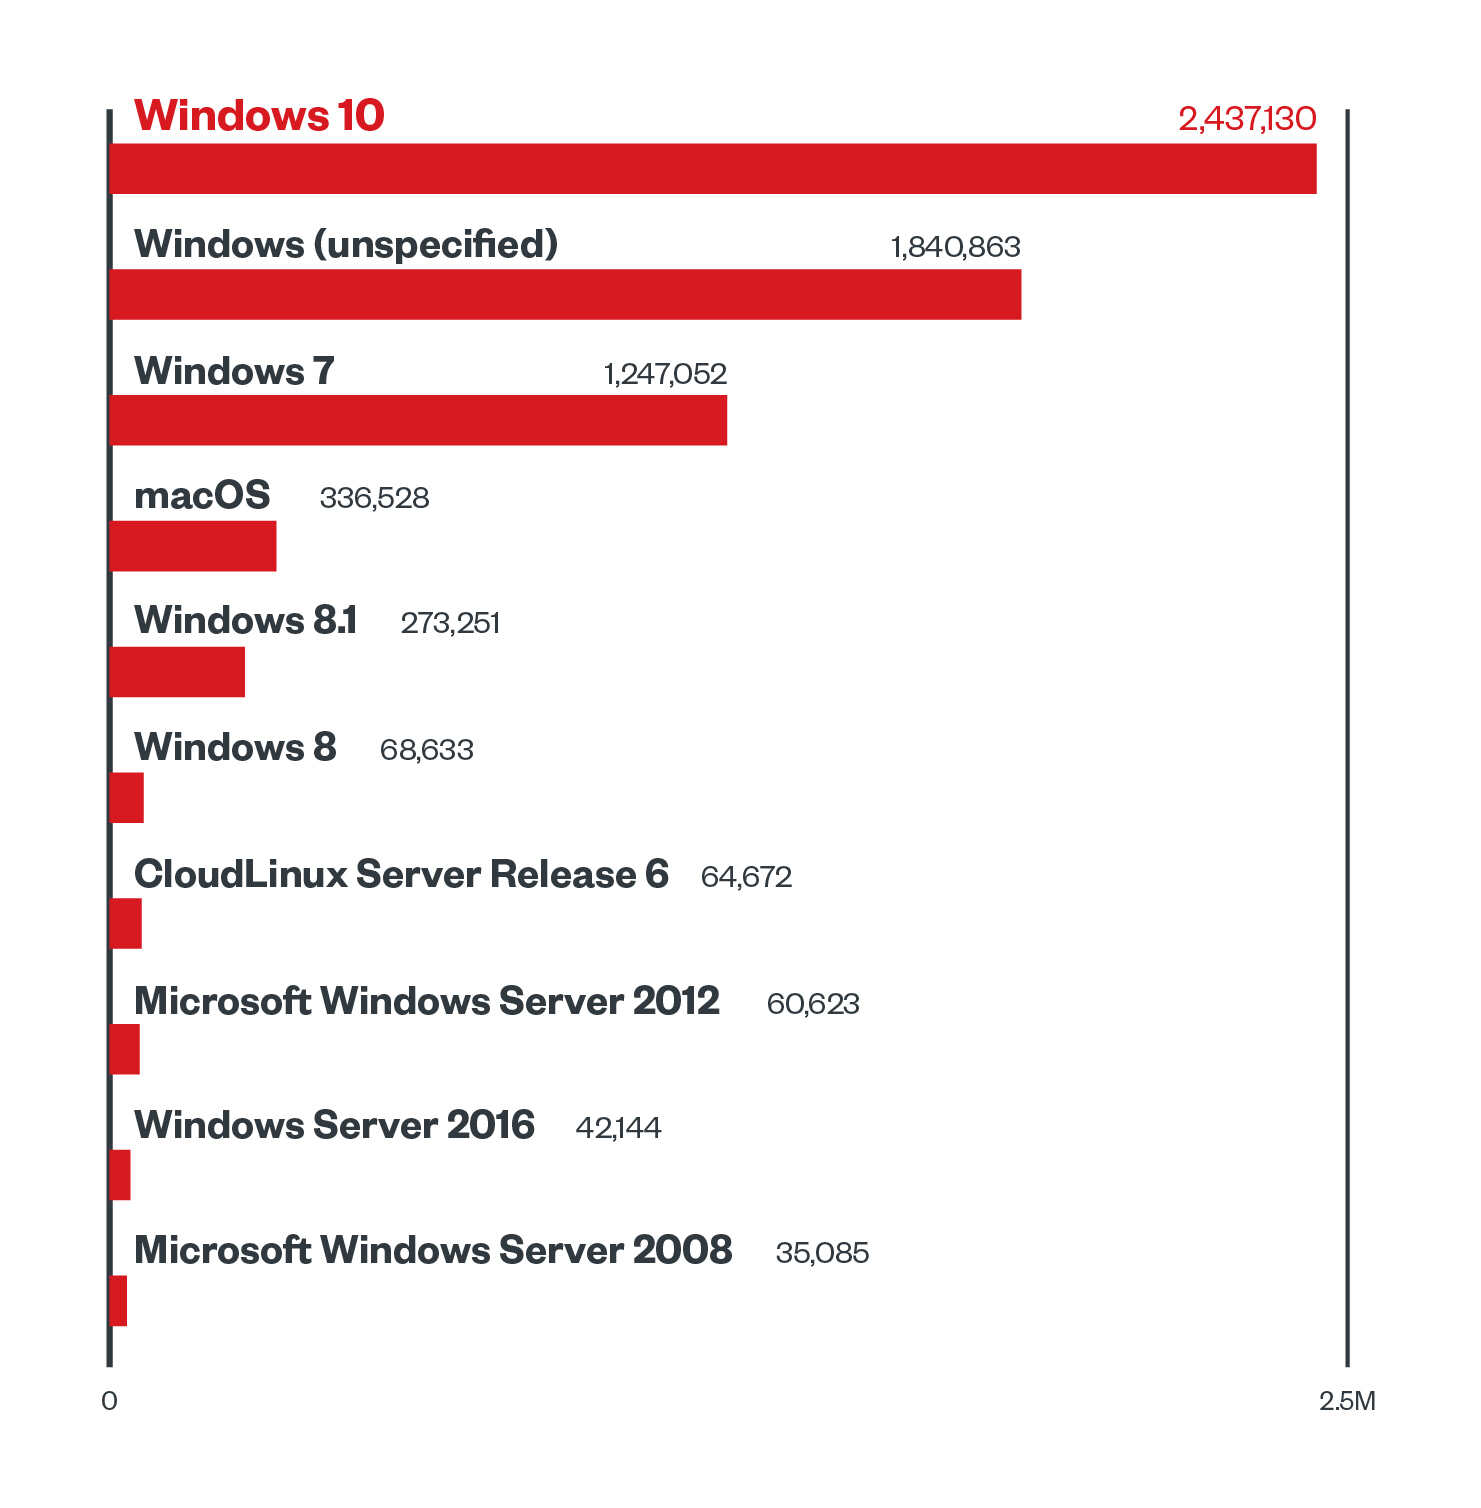 Figure 4. The top 10 operating systems according to malware detection